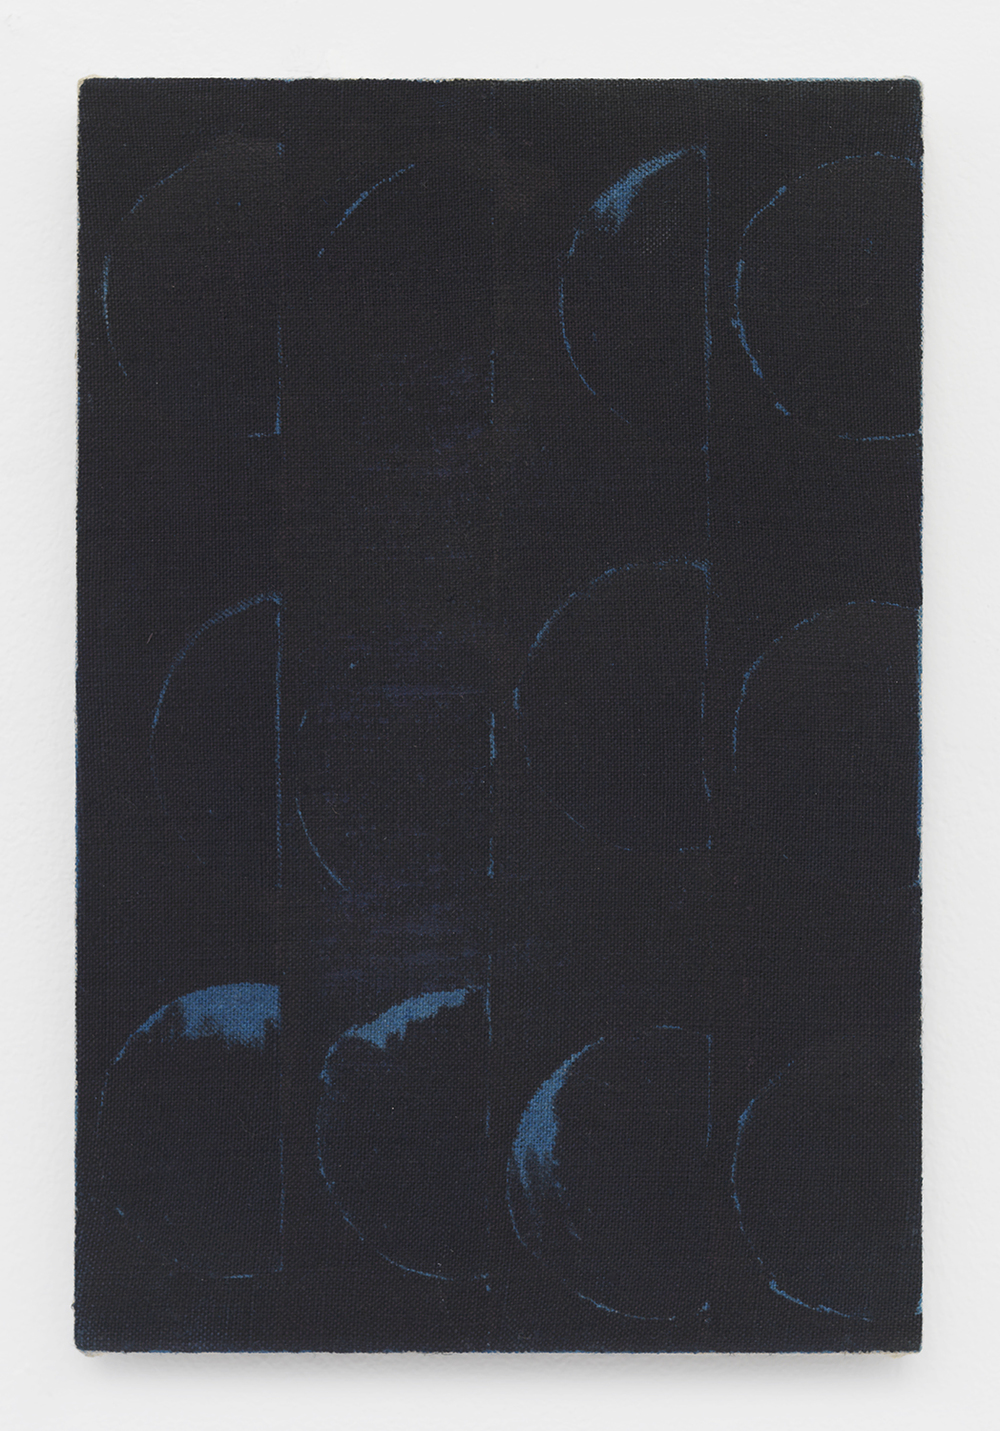 Negated Blue (Bean Can) 2014 Acrylic and India ink on linen 12 x 8 inches